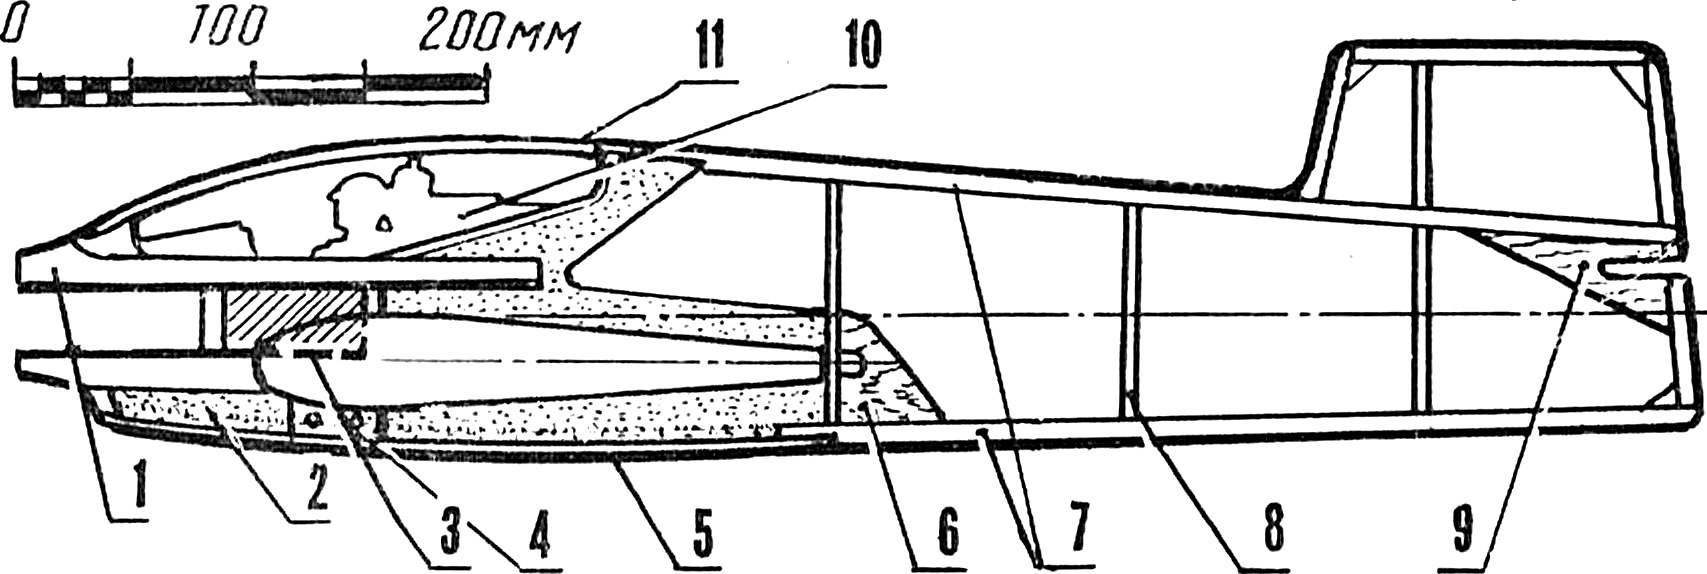 Fig. 5. The fuselage of the model.